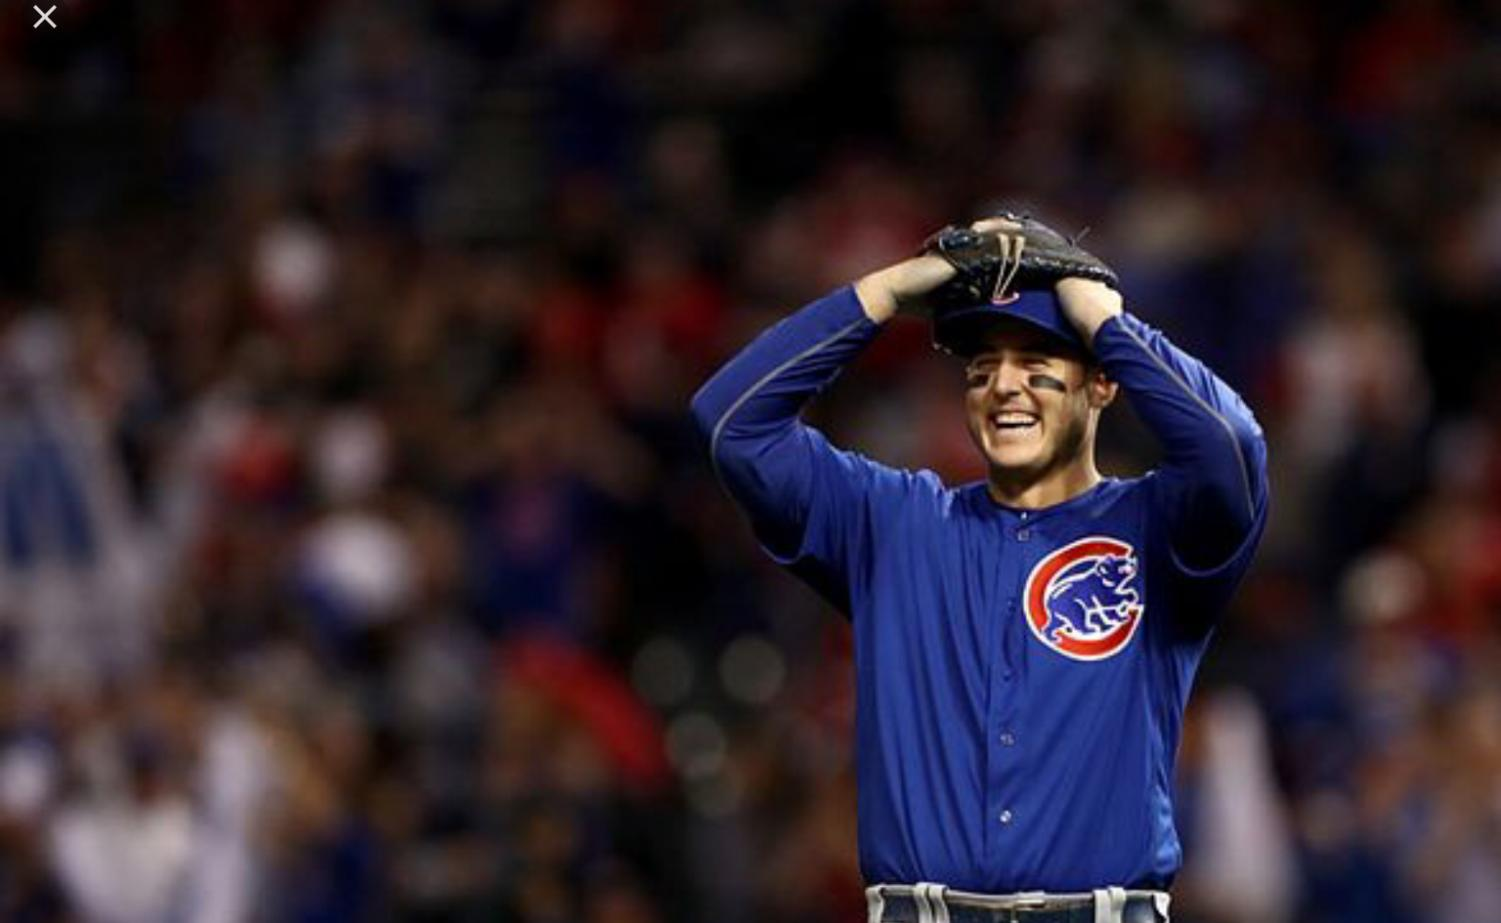 Anthony rizzo celebrates World Series win.